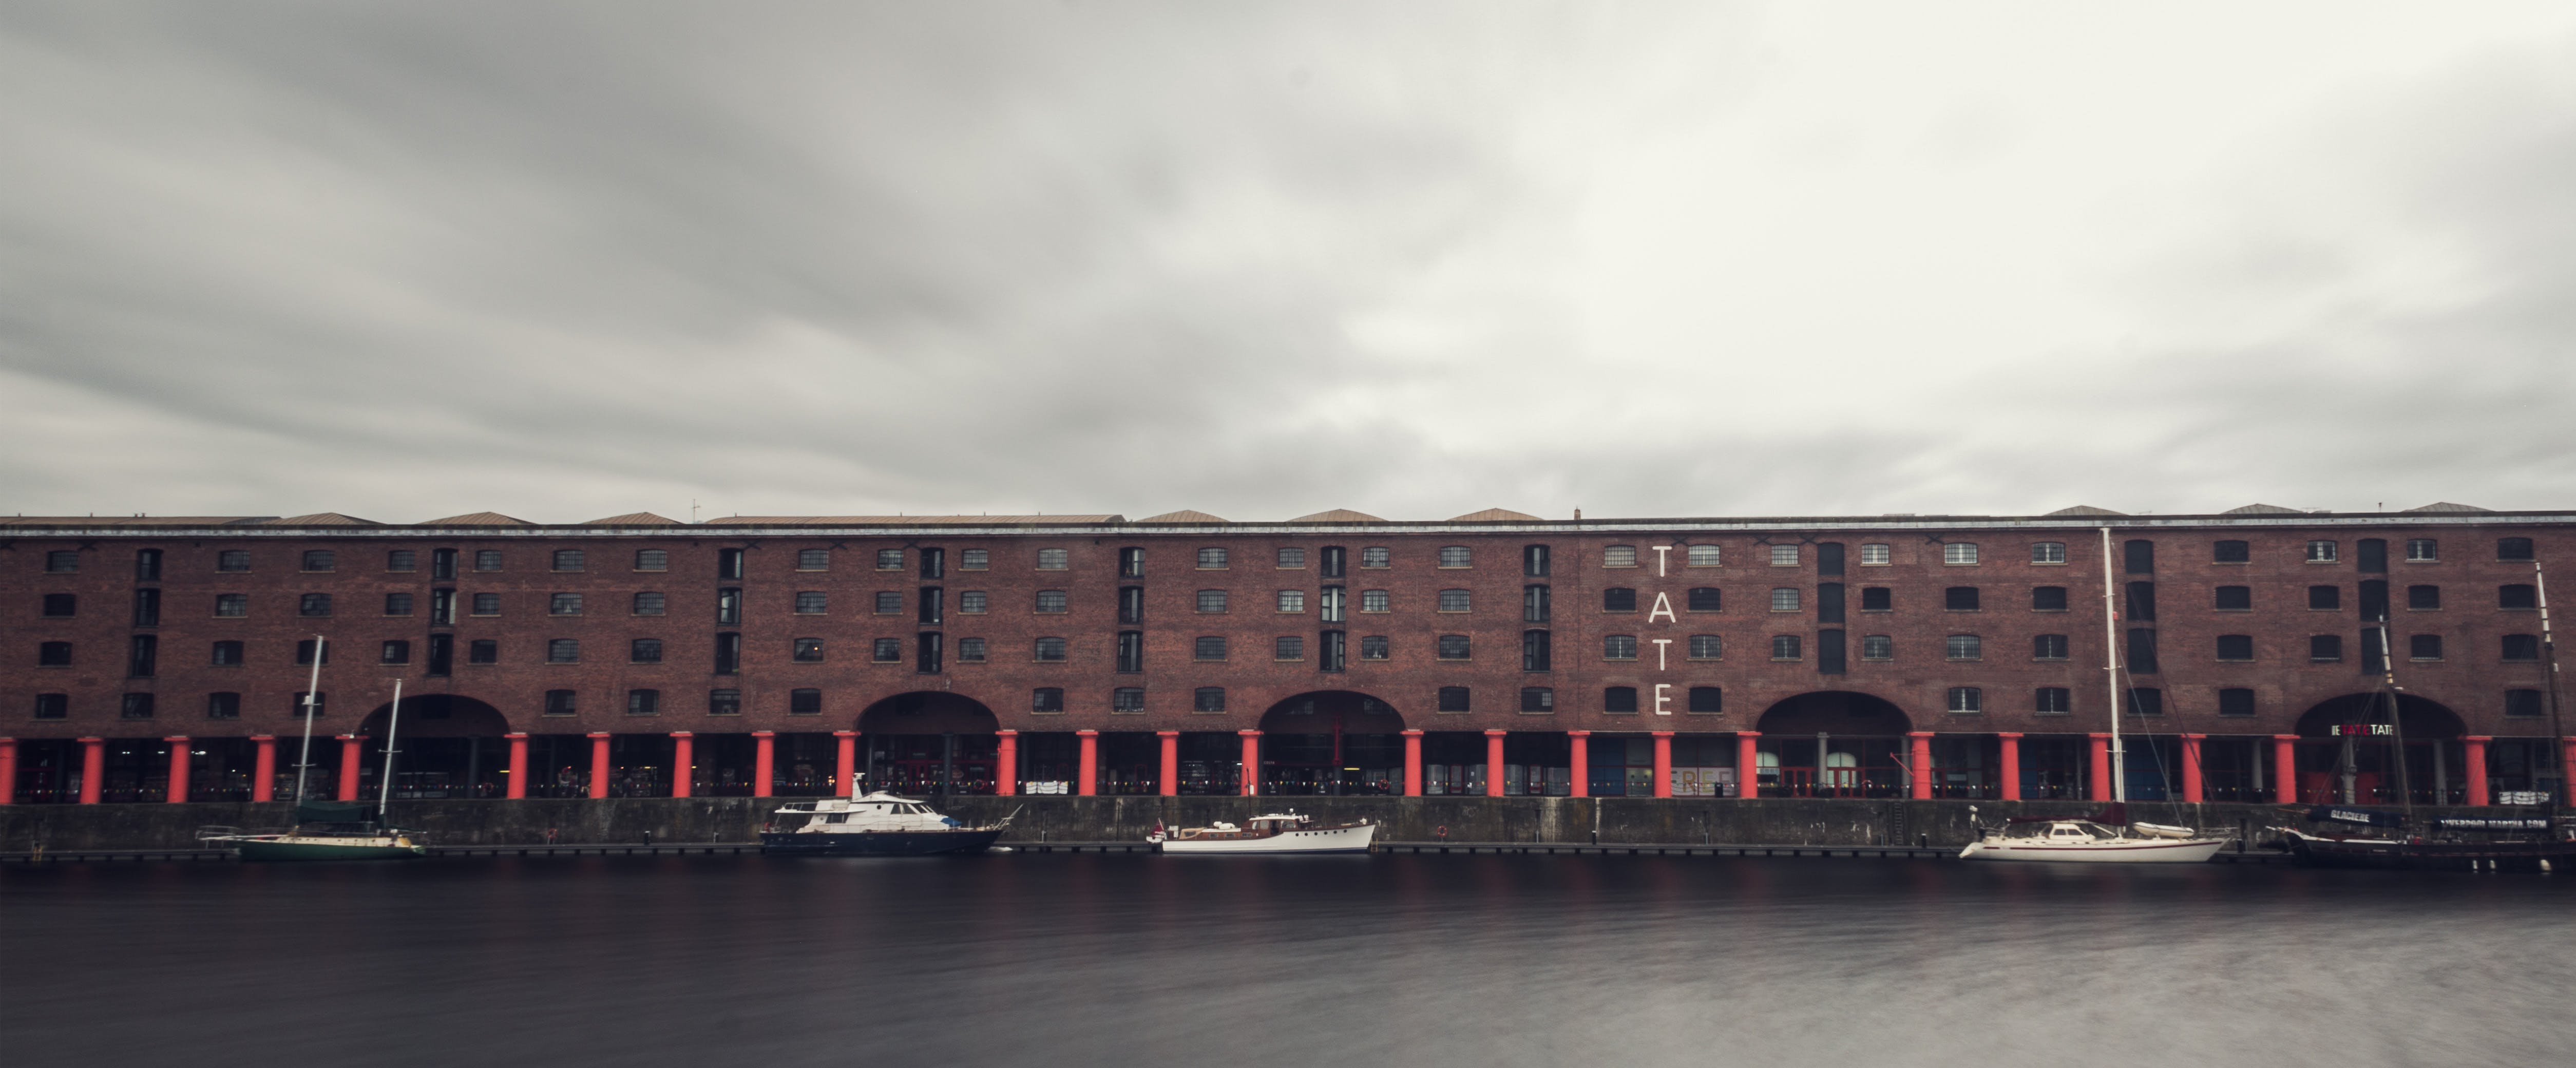 Free stock photo of Albert Dock, Liverpool, waterfront